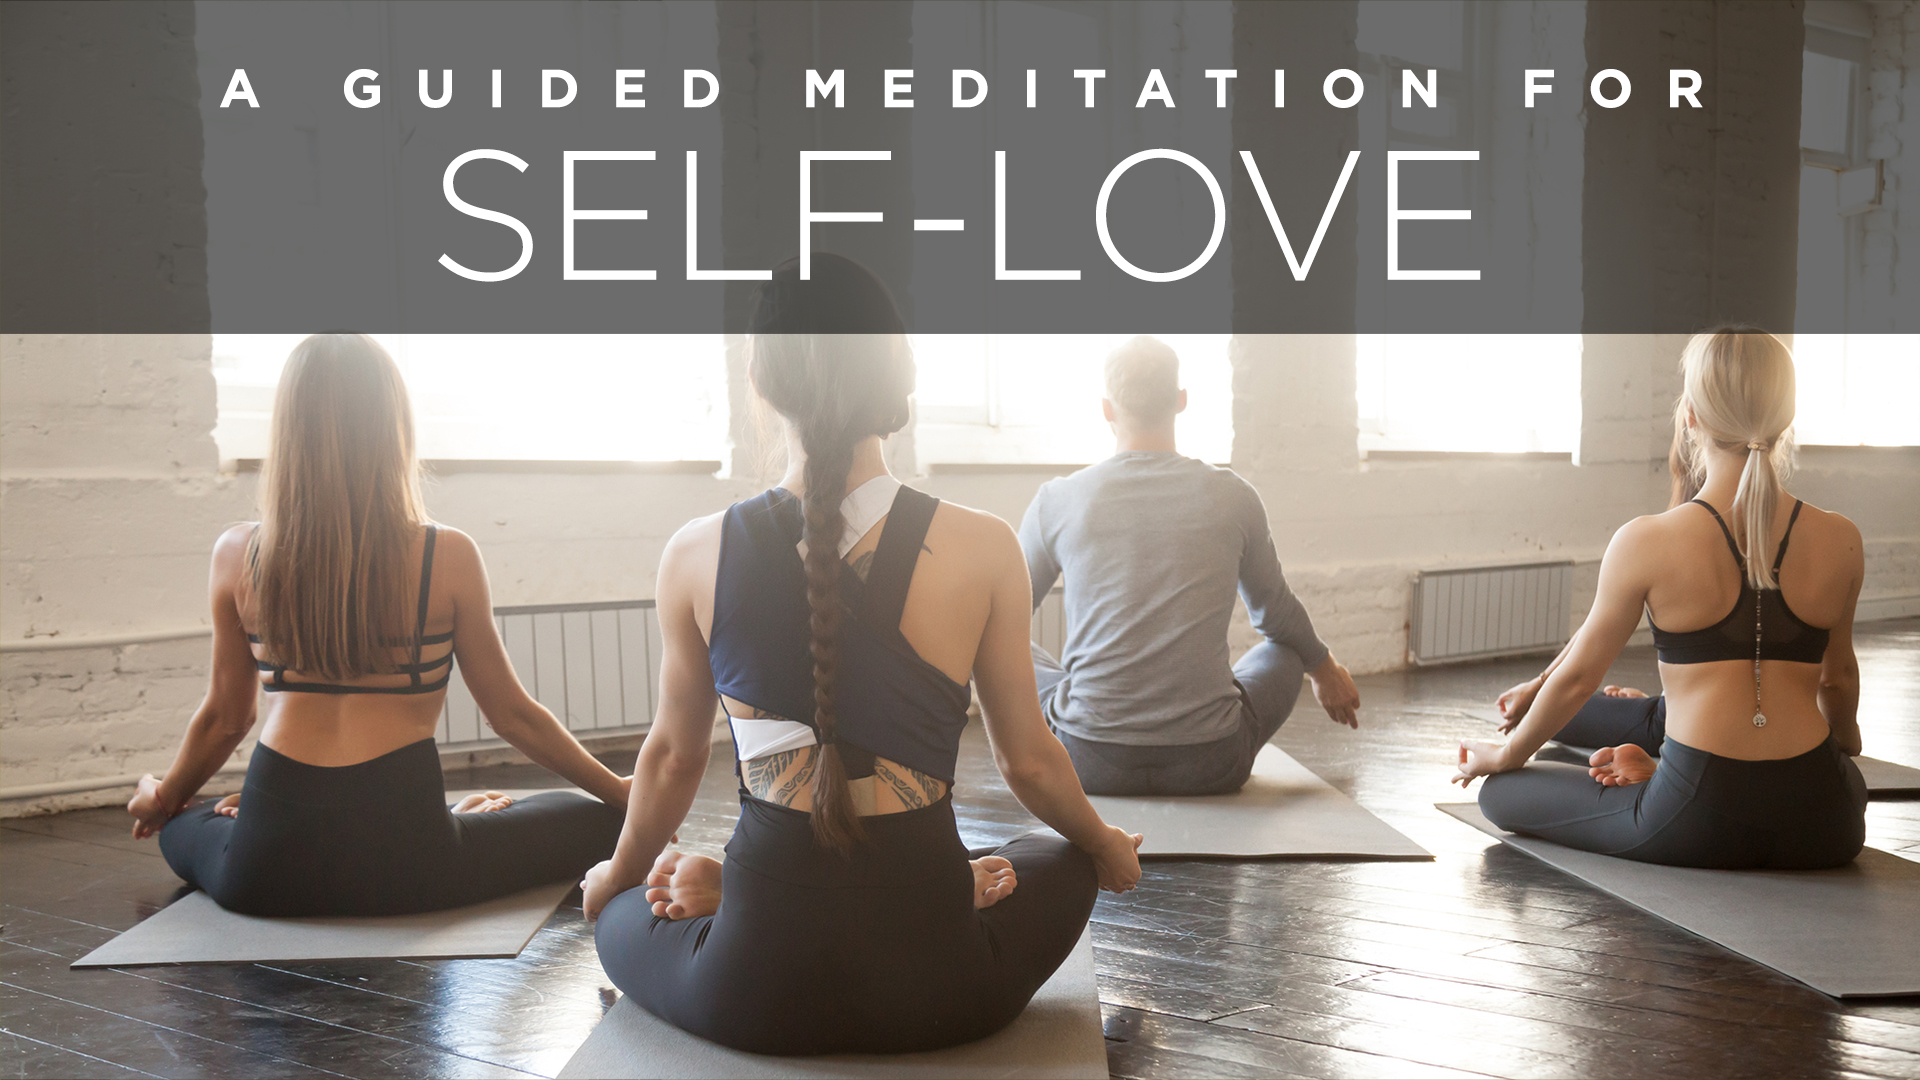 A Guided Meditation for Self-Love